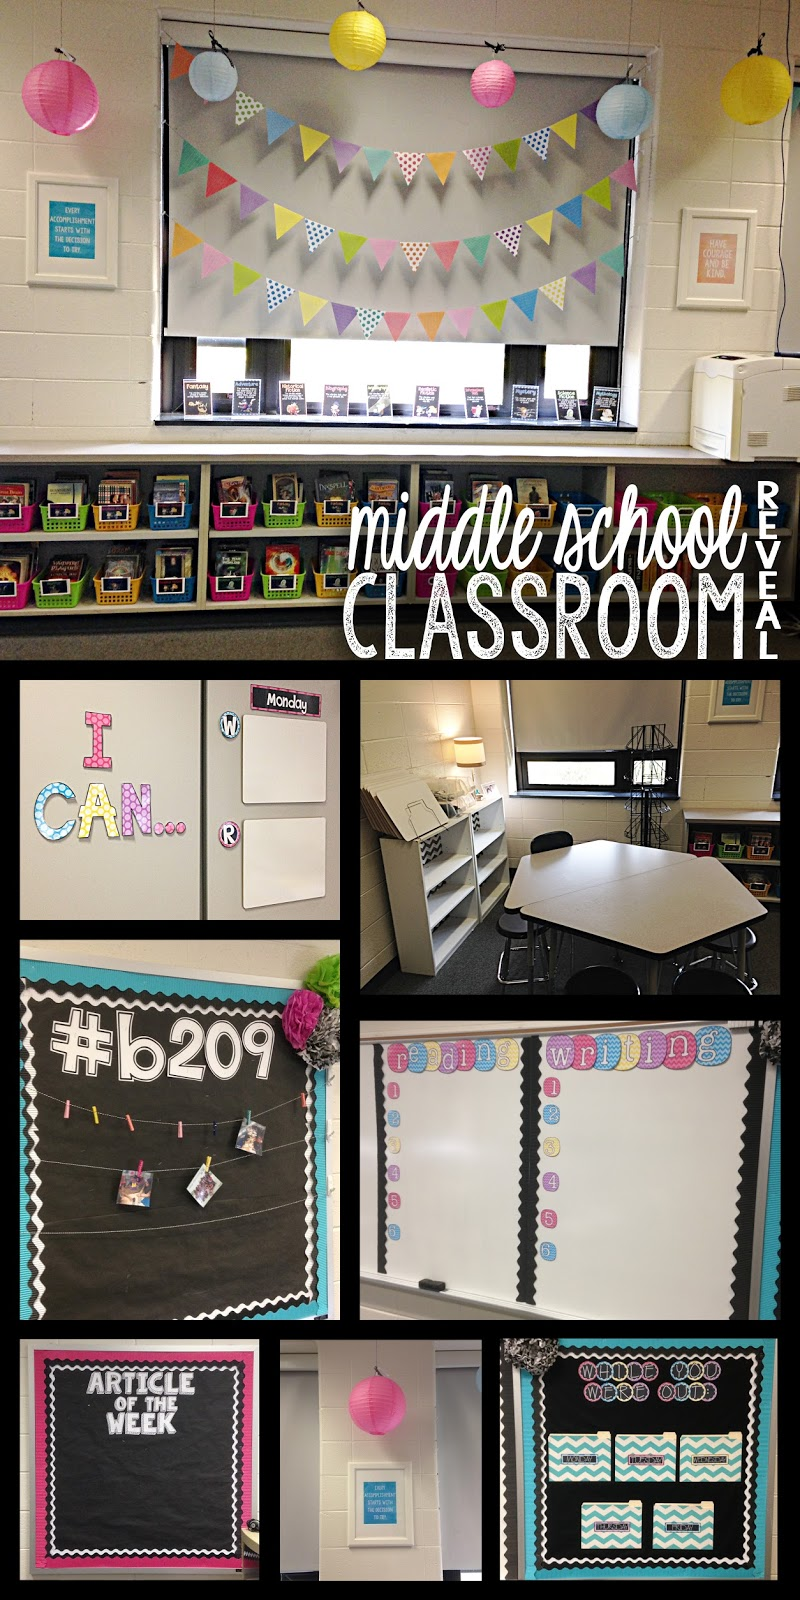 Classroom Decorating Themes Middle School ~ Musings from the middle school classroom reveal